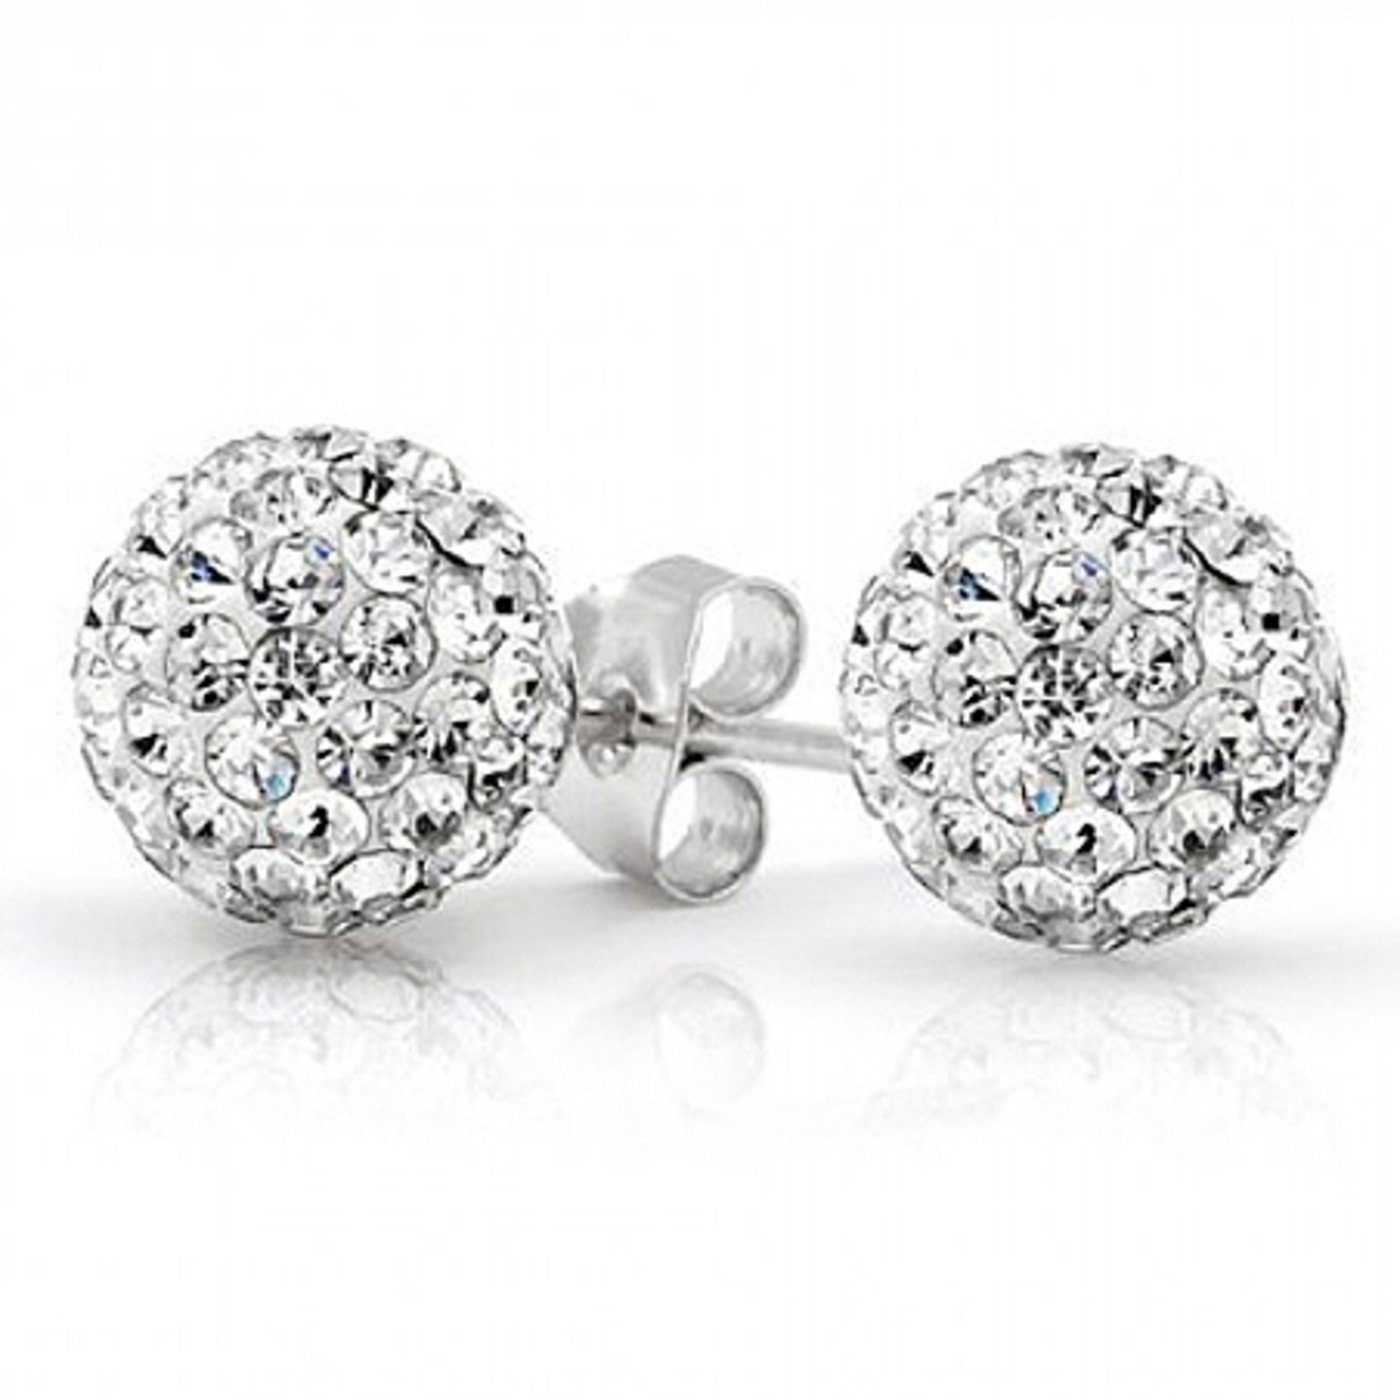 2 Ct Swarovski Crystal Ball Studs ONLY $4.99 + FREE Shipping (was $75)!